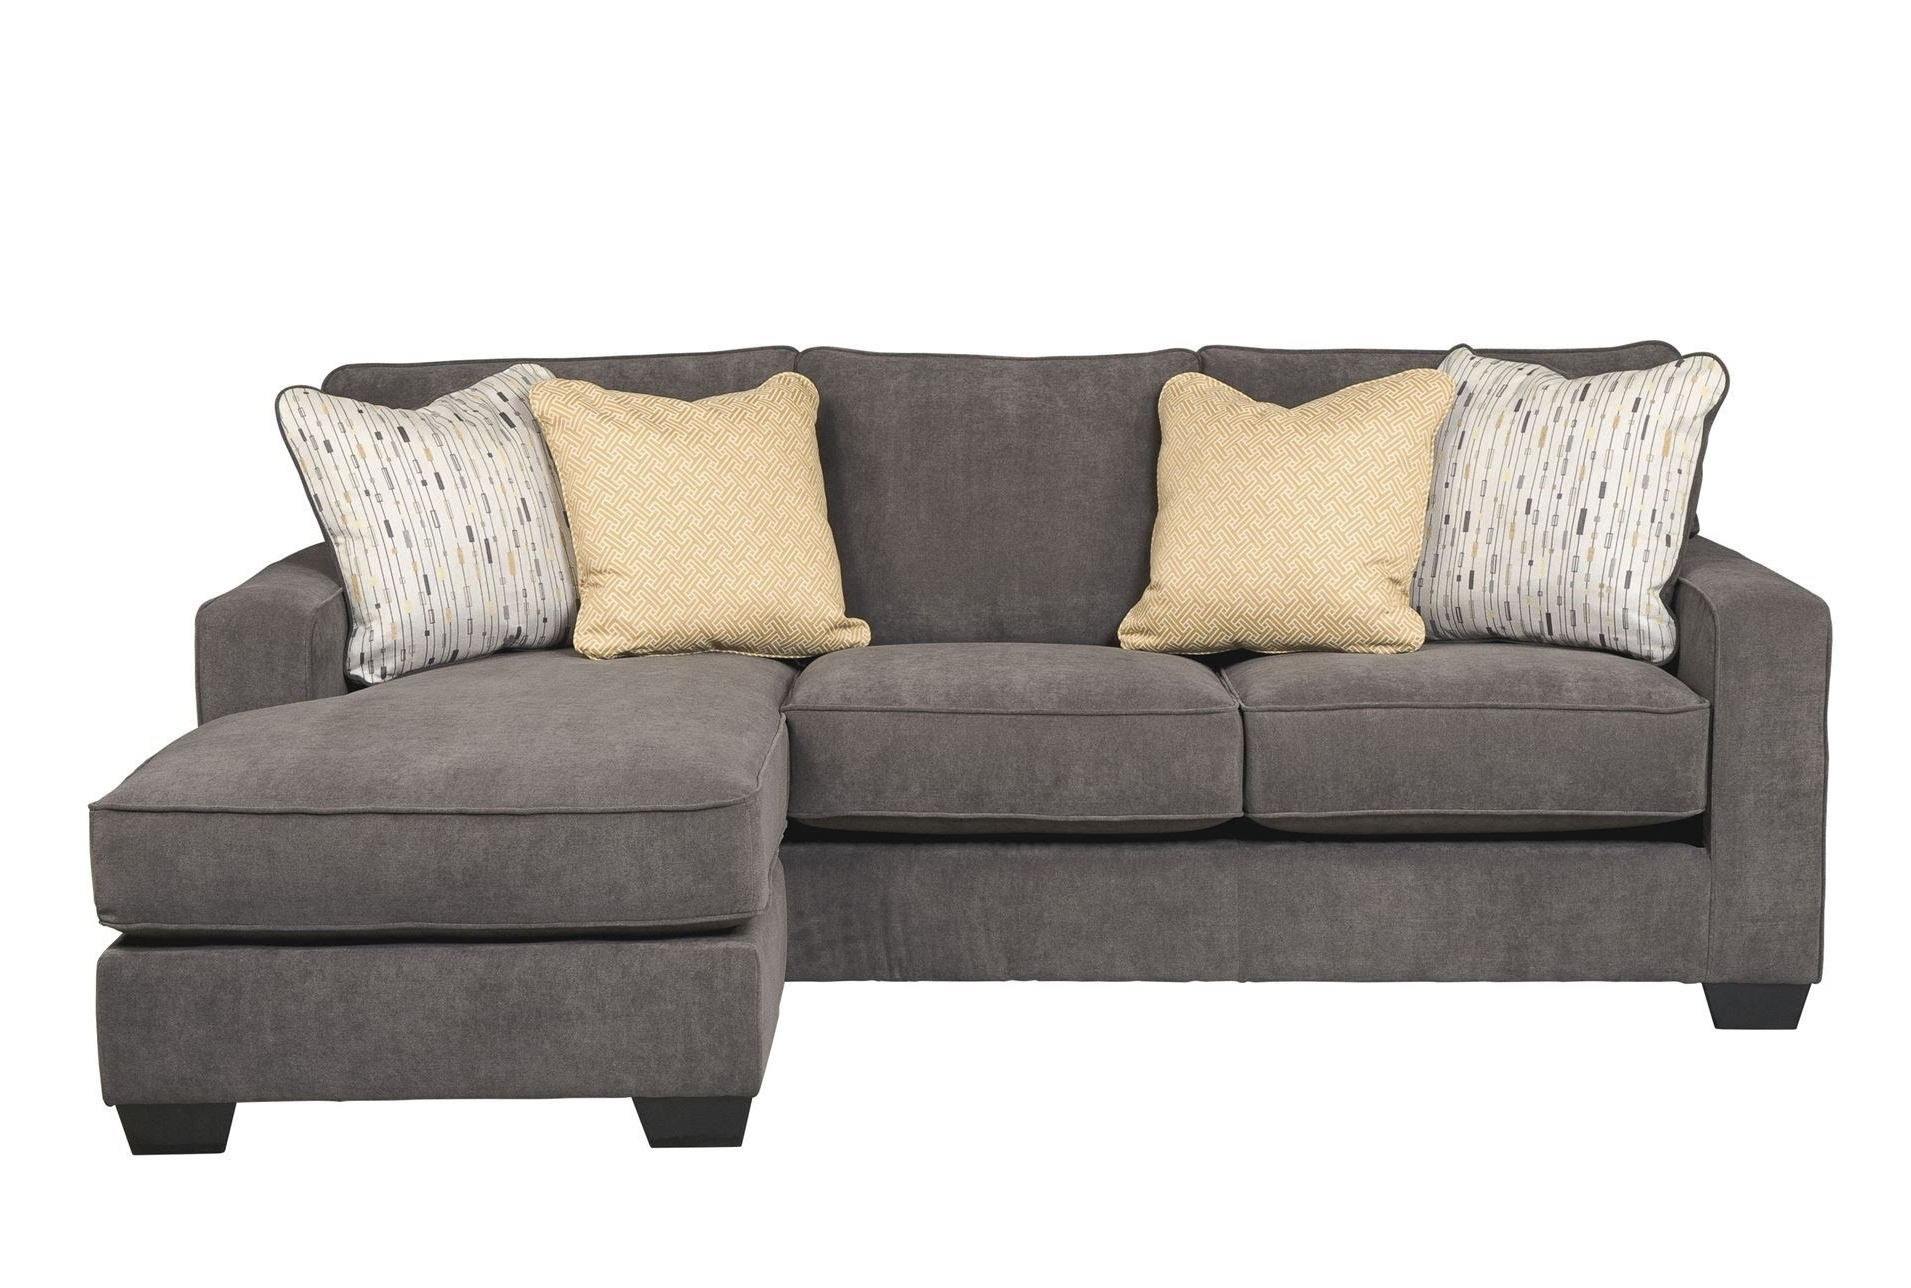 Interesting Couch With Chaise Lounge Ideas – Youtube Throughout Trendy Small Couches With Chaise Lounge (View 4 of 15)